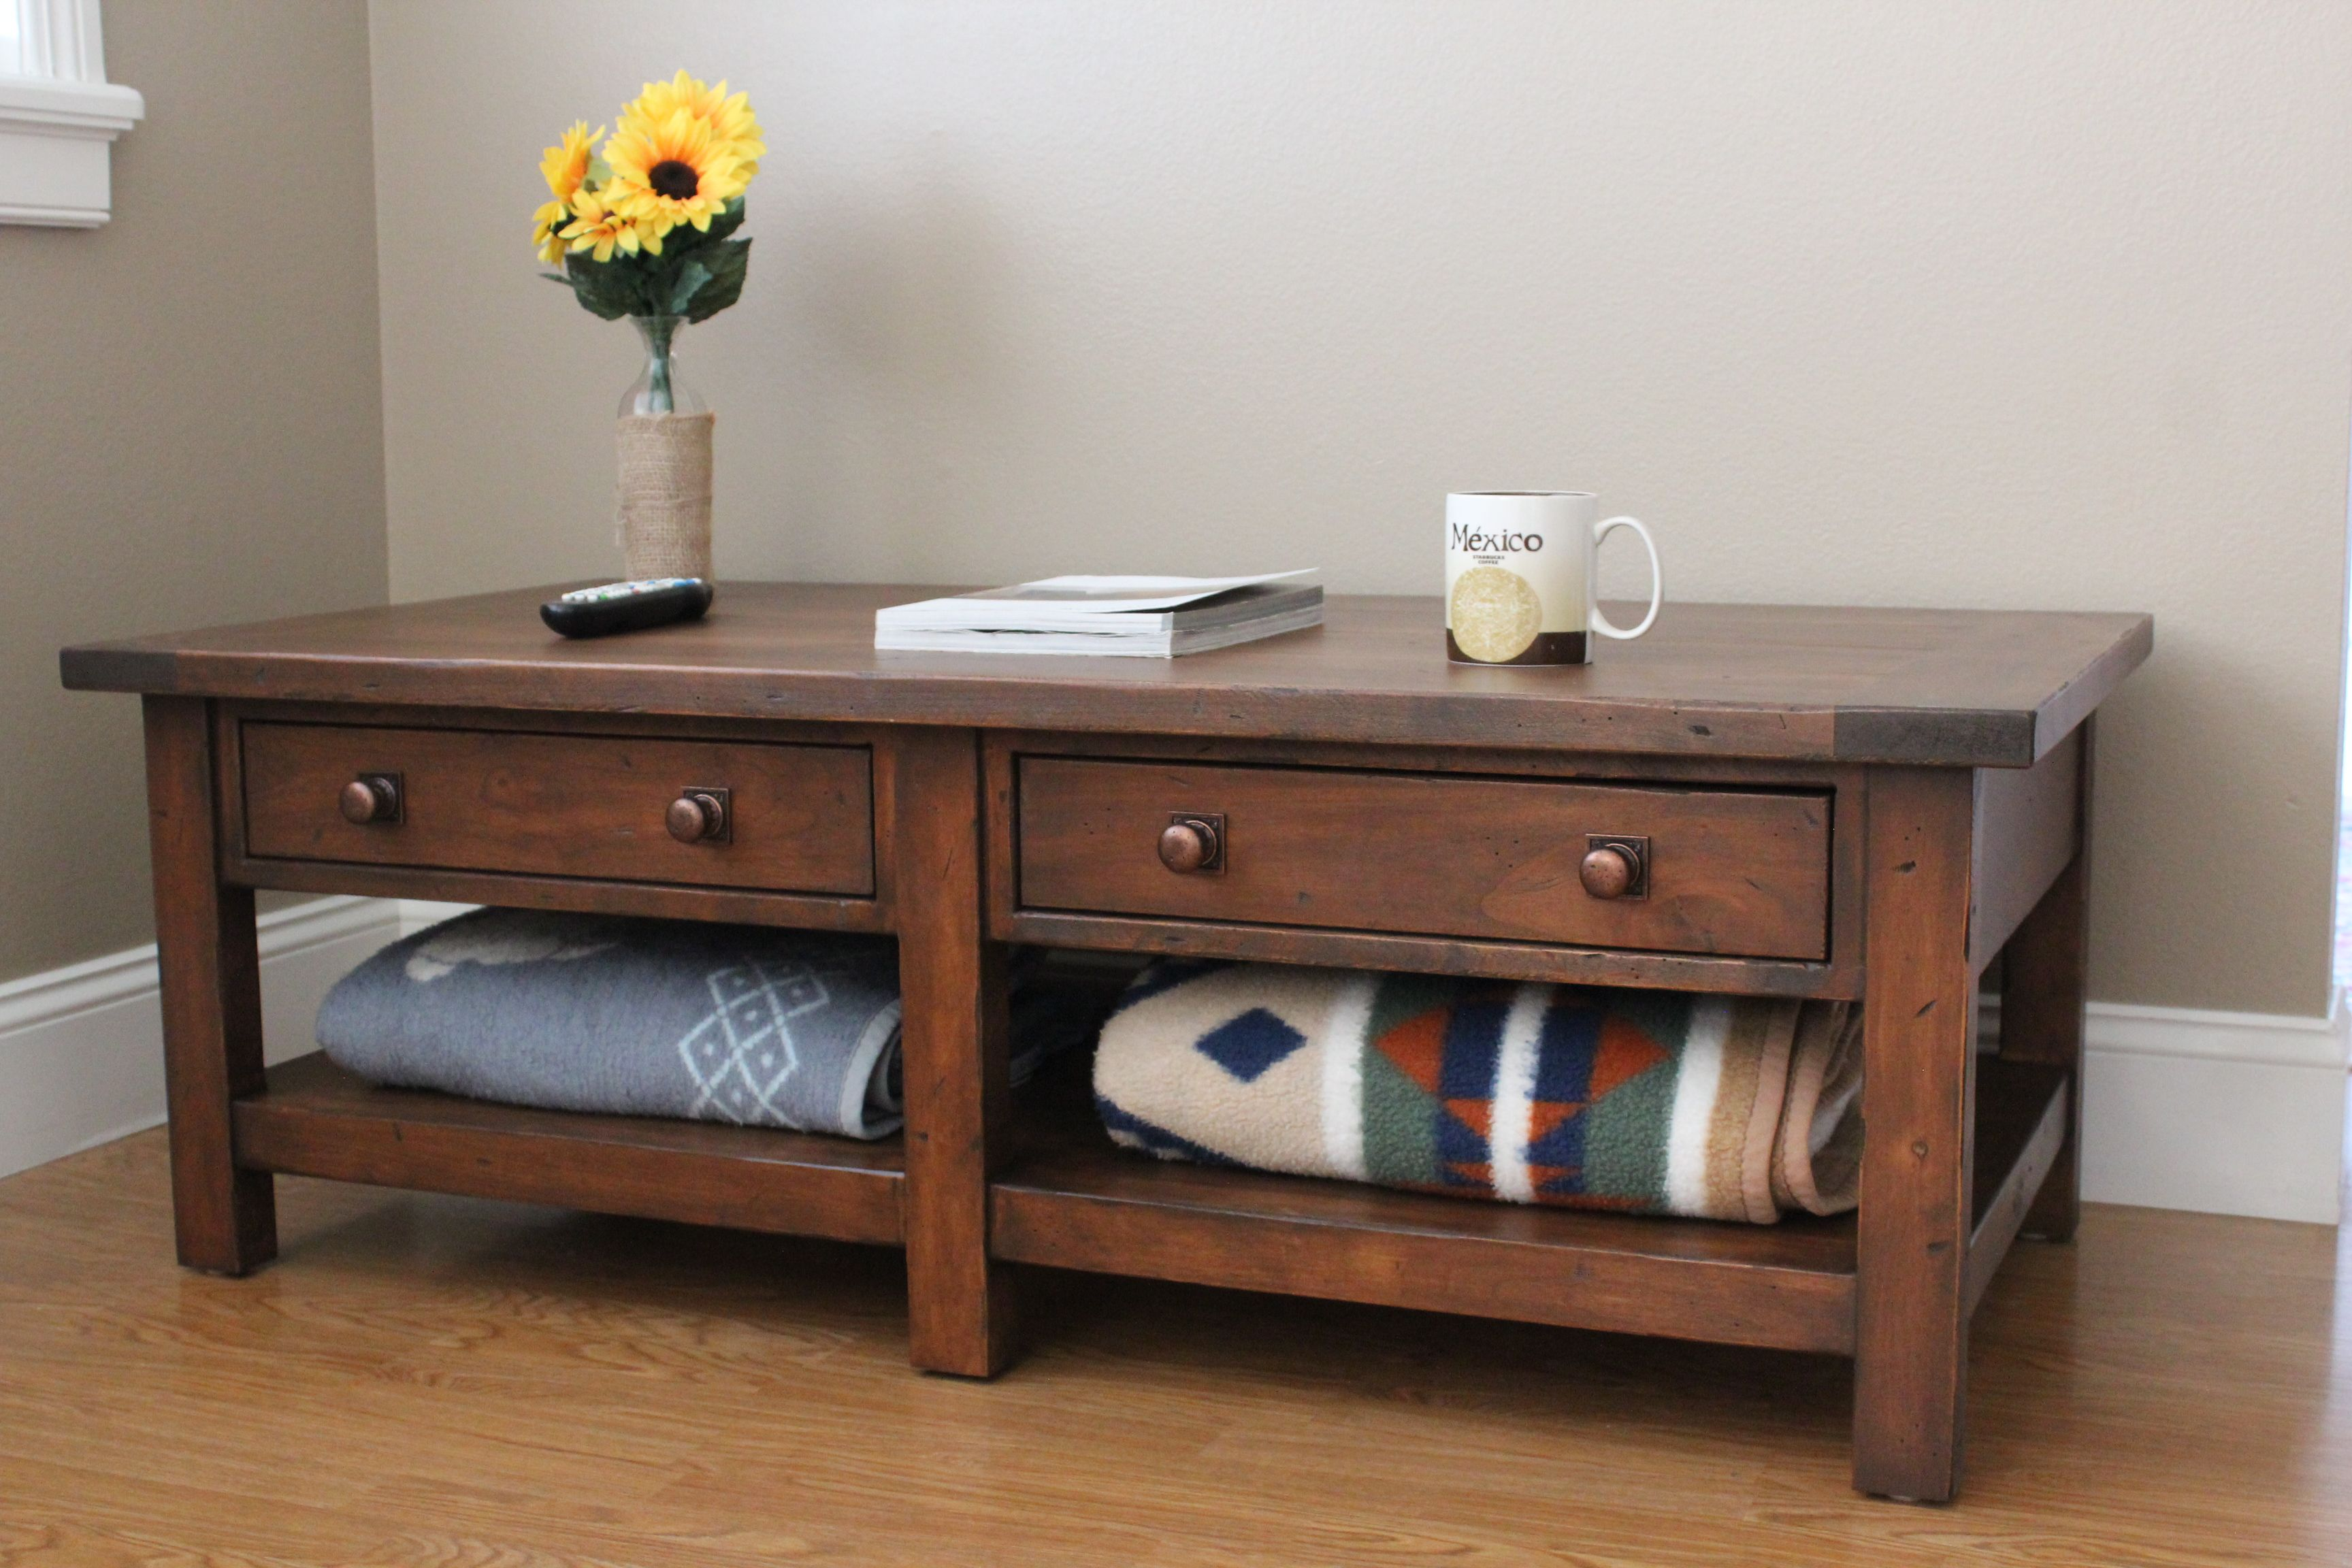 LDIY Projects Replica Of The Pottery Barn Benchwright Coffee Table - Pottery barn benchwright end table